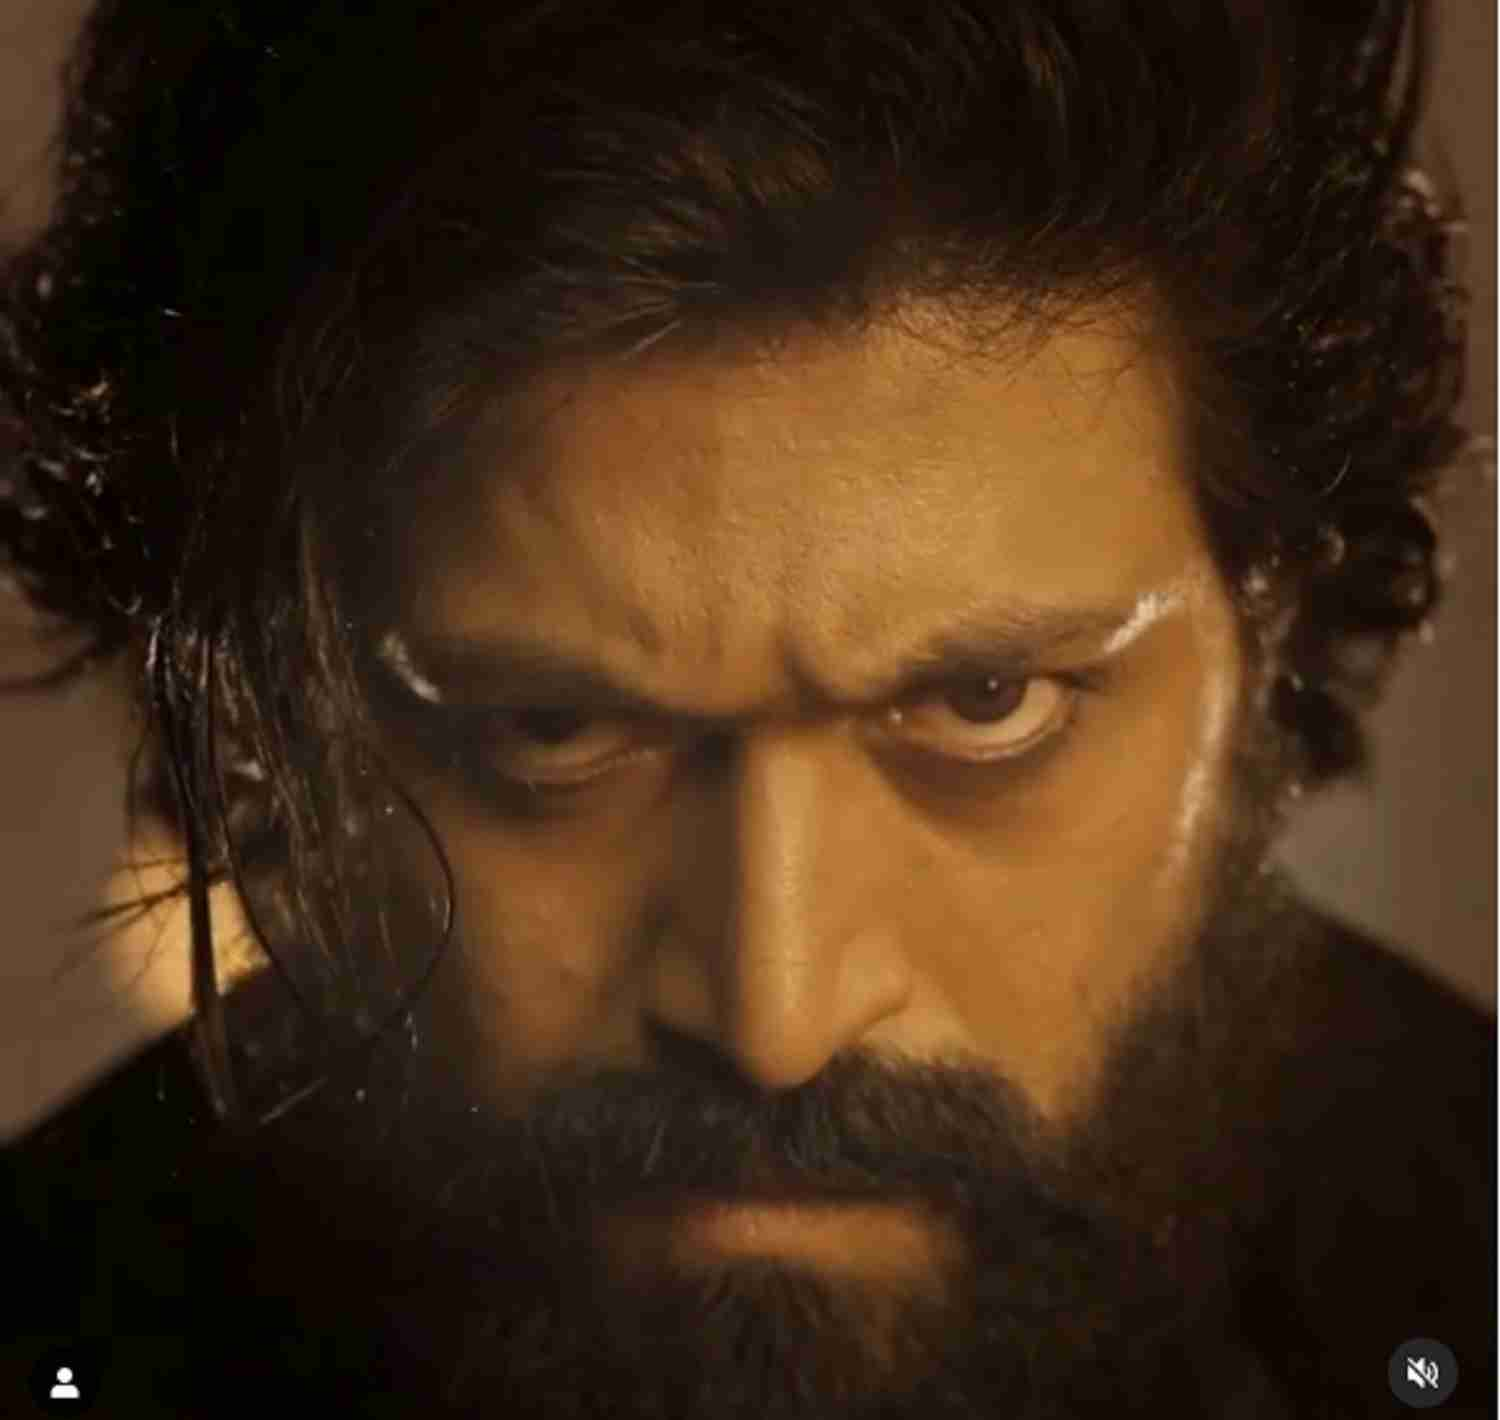 kgf chapter 2 full movie in hindi download filmyzilla 480p, kgf chapter 2 full movie in hindi download filmyzilla 720p, kgf chapter 2 full movie in hindi download filmyzilla free, kgf chapter 2 full movie in hindi download filmyzilla HD, kgf chapter 2 full movie in hindi download HD, kgf chapter 2, kgf chapter 2 full movie hindi, kgf chapter 2 full movie hindi download Tamilrockers, kgf chapter 2 full movie hindi download, kgf chapter 2 release date, kgf chapter 2 full movie, Kgf chapter 2 teaser, kgf chapter 2 full movie hindi dubbed download tamilrockers, kgf chapter 2 trailer, kgf chapter 2 full movie in hindi download pagalworld